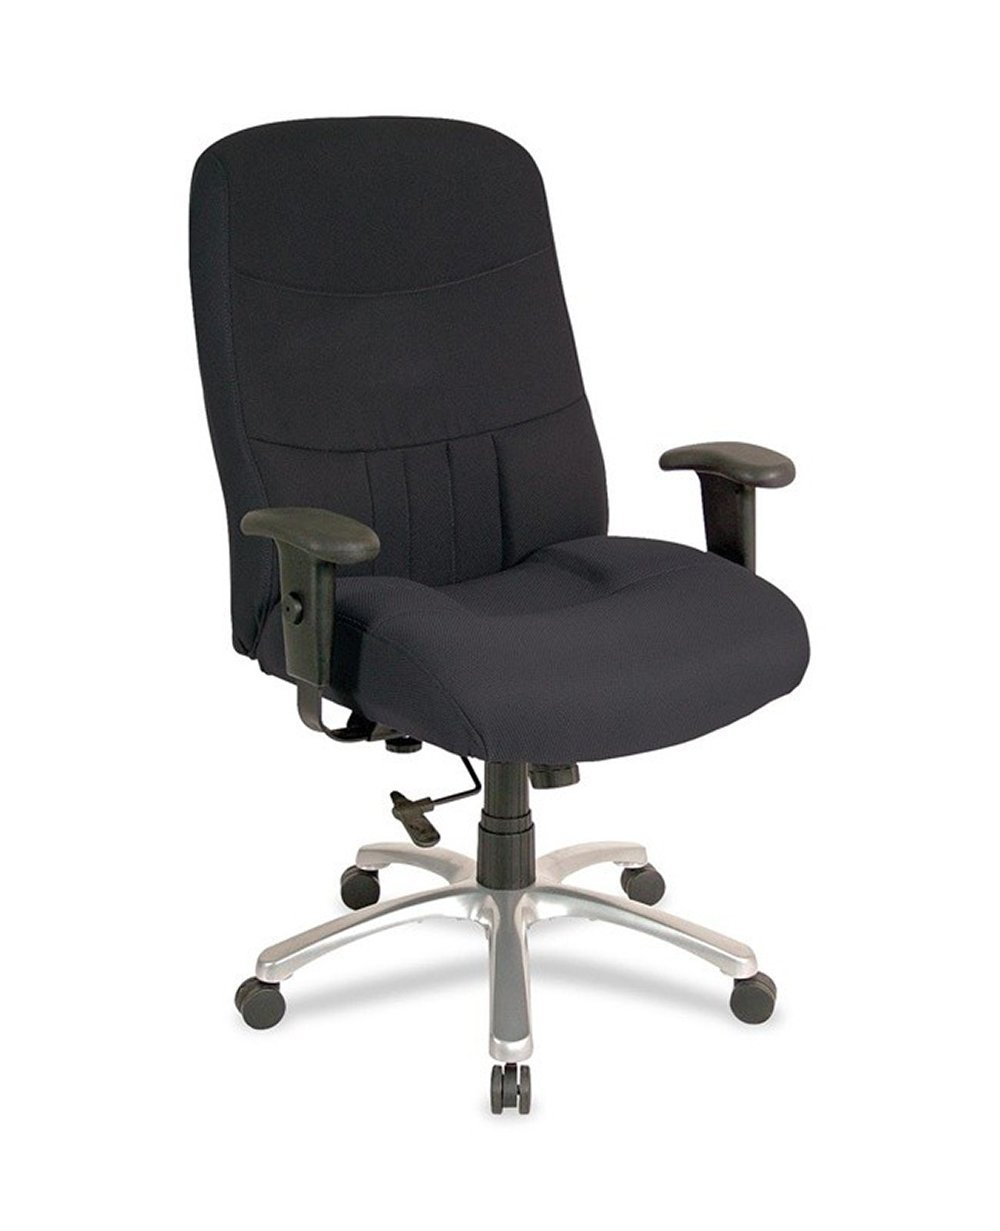 Excelsior Big Tall Heavy Duty Office Chair Review Best